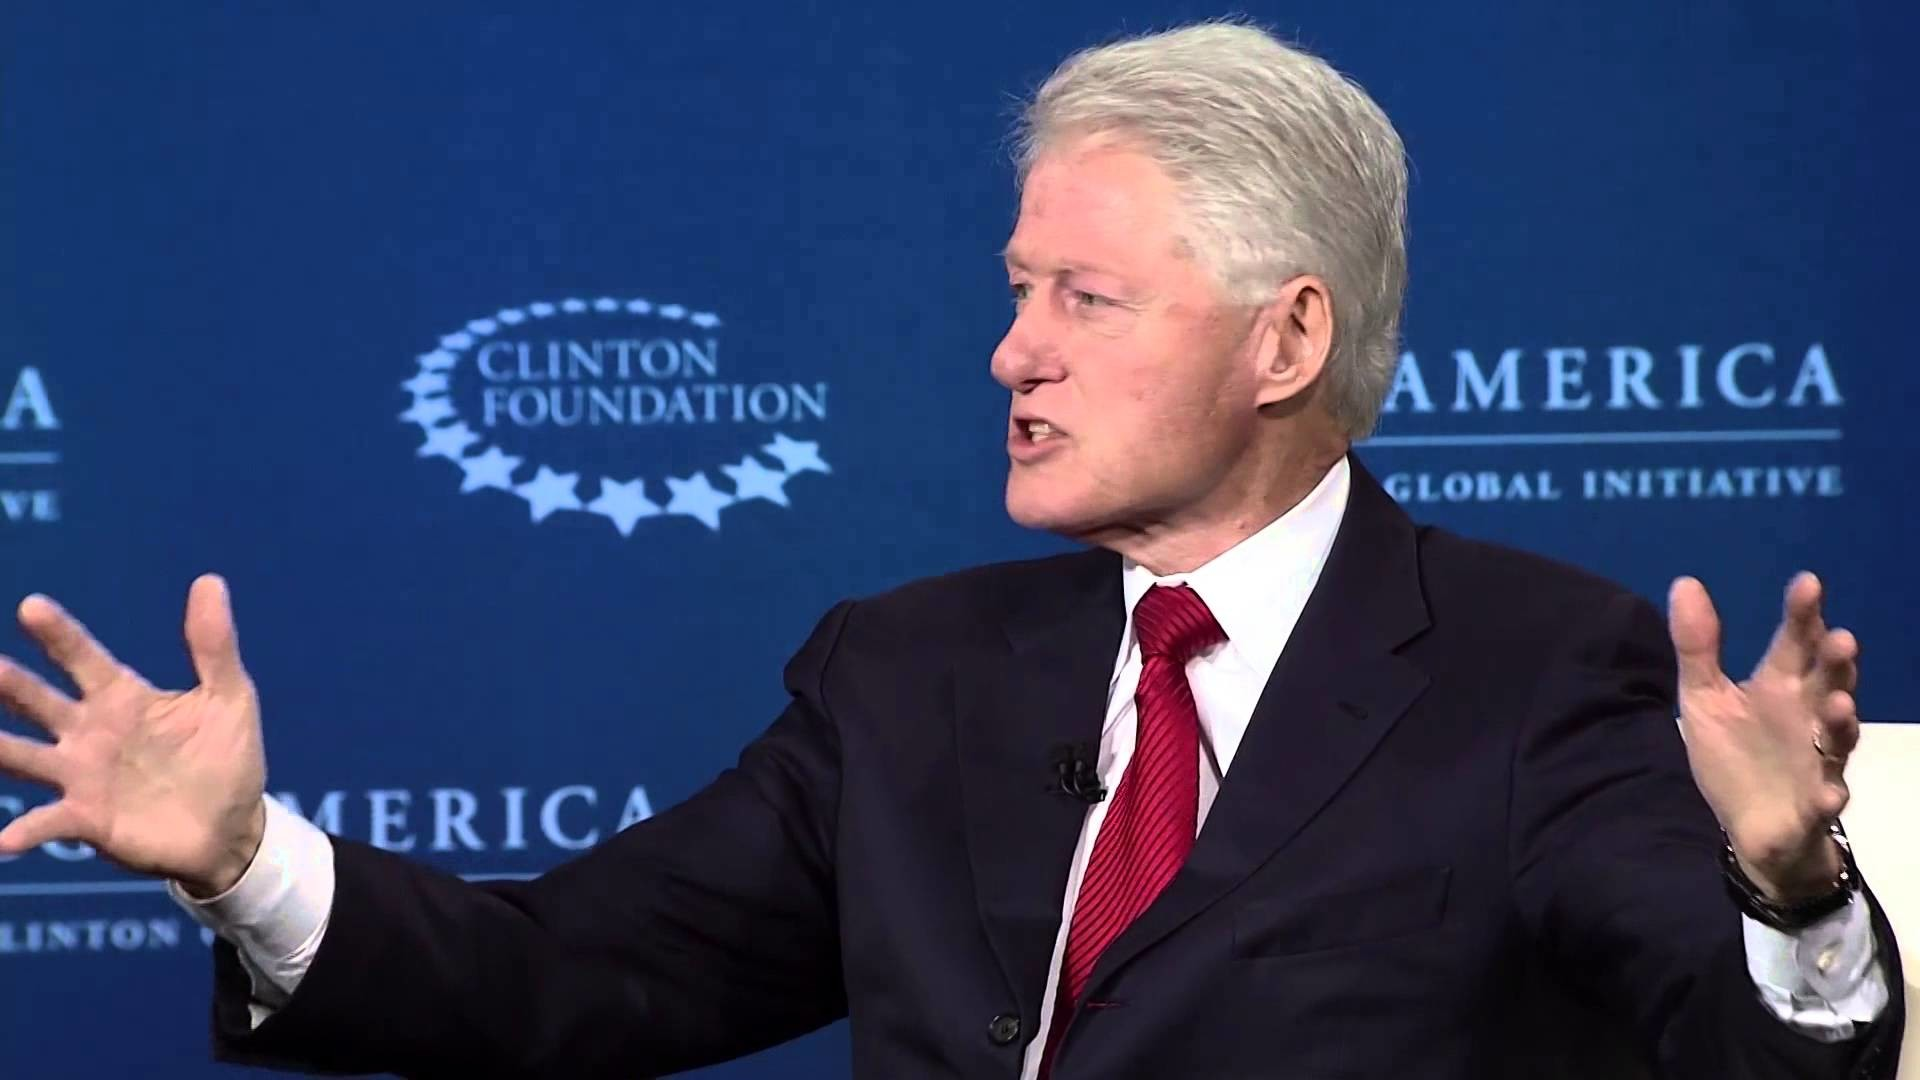 The Case for Economic Justice: President Bill Clinton and David Gregory